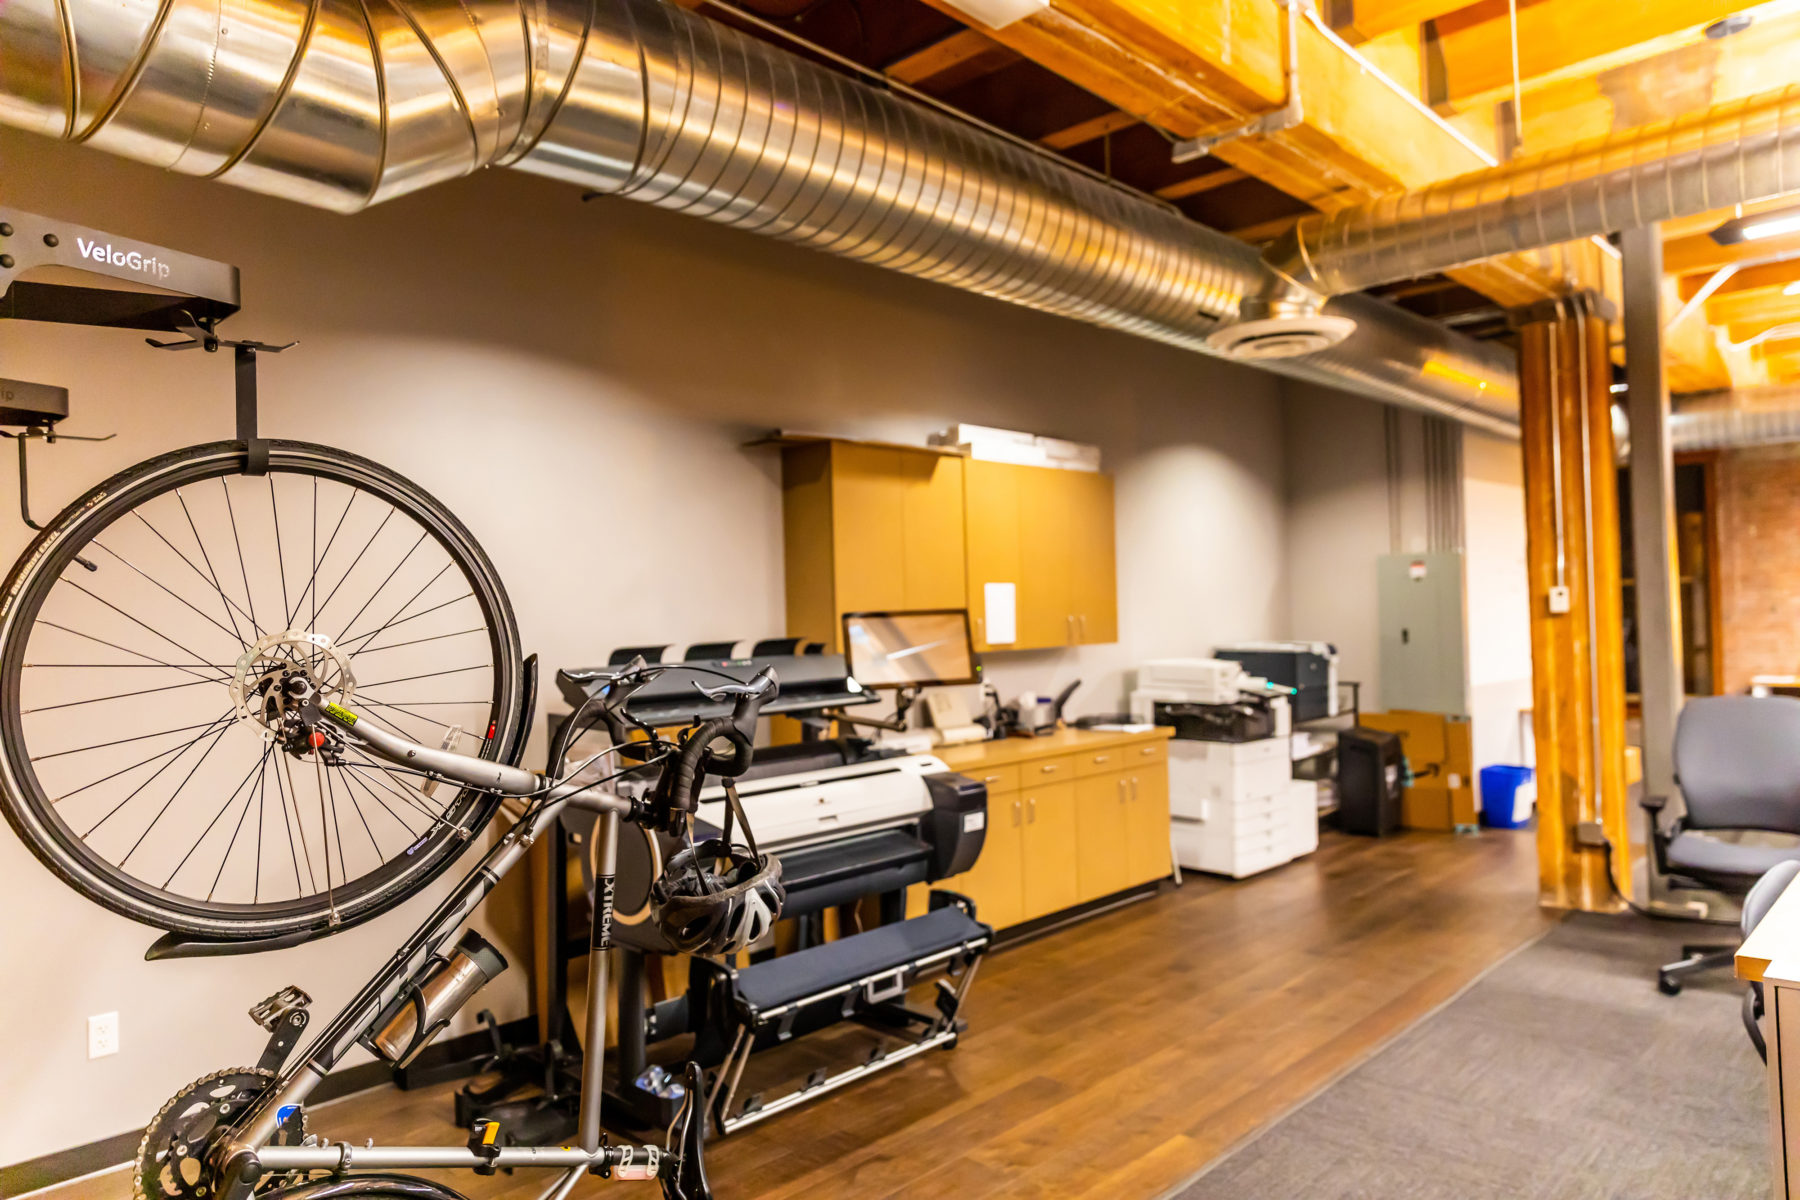 Office interior with a bike.